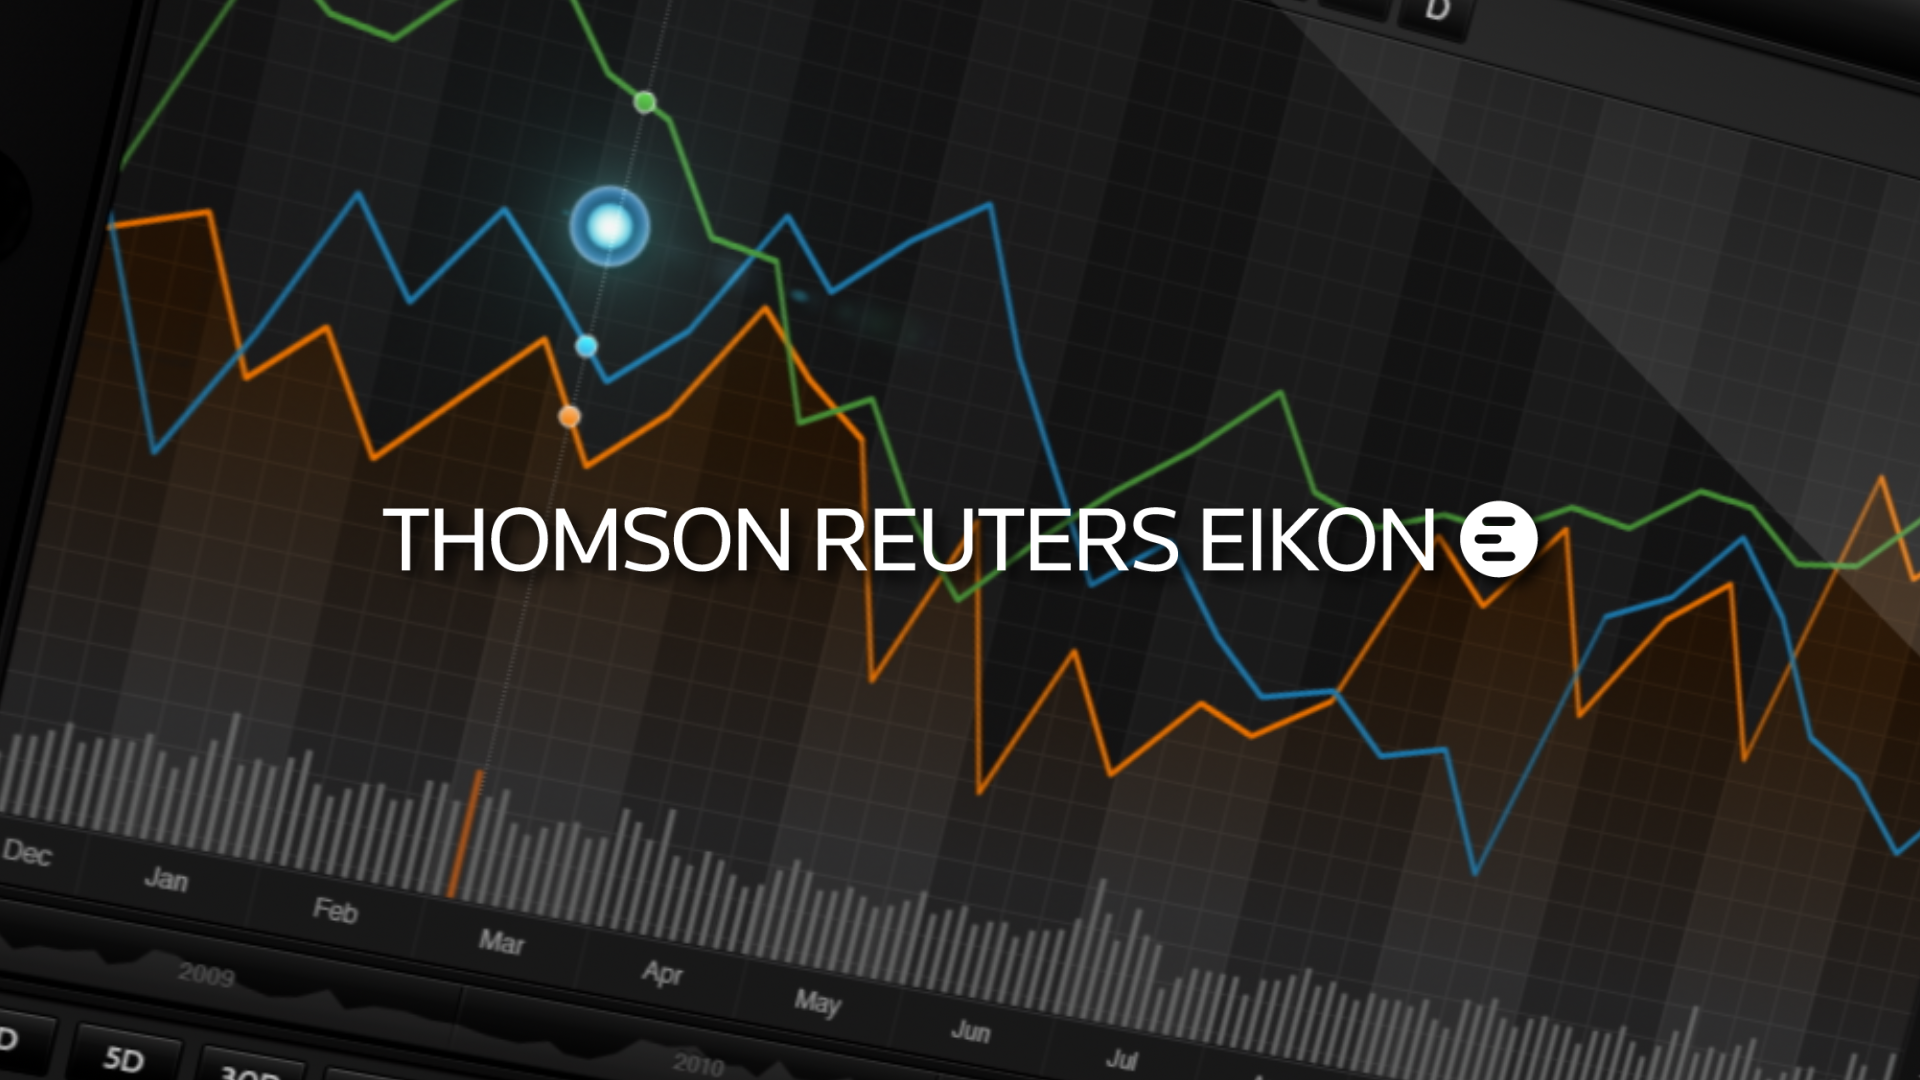 Thomson Reuters Eikon